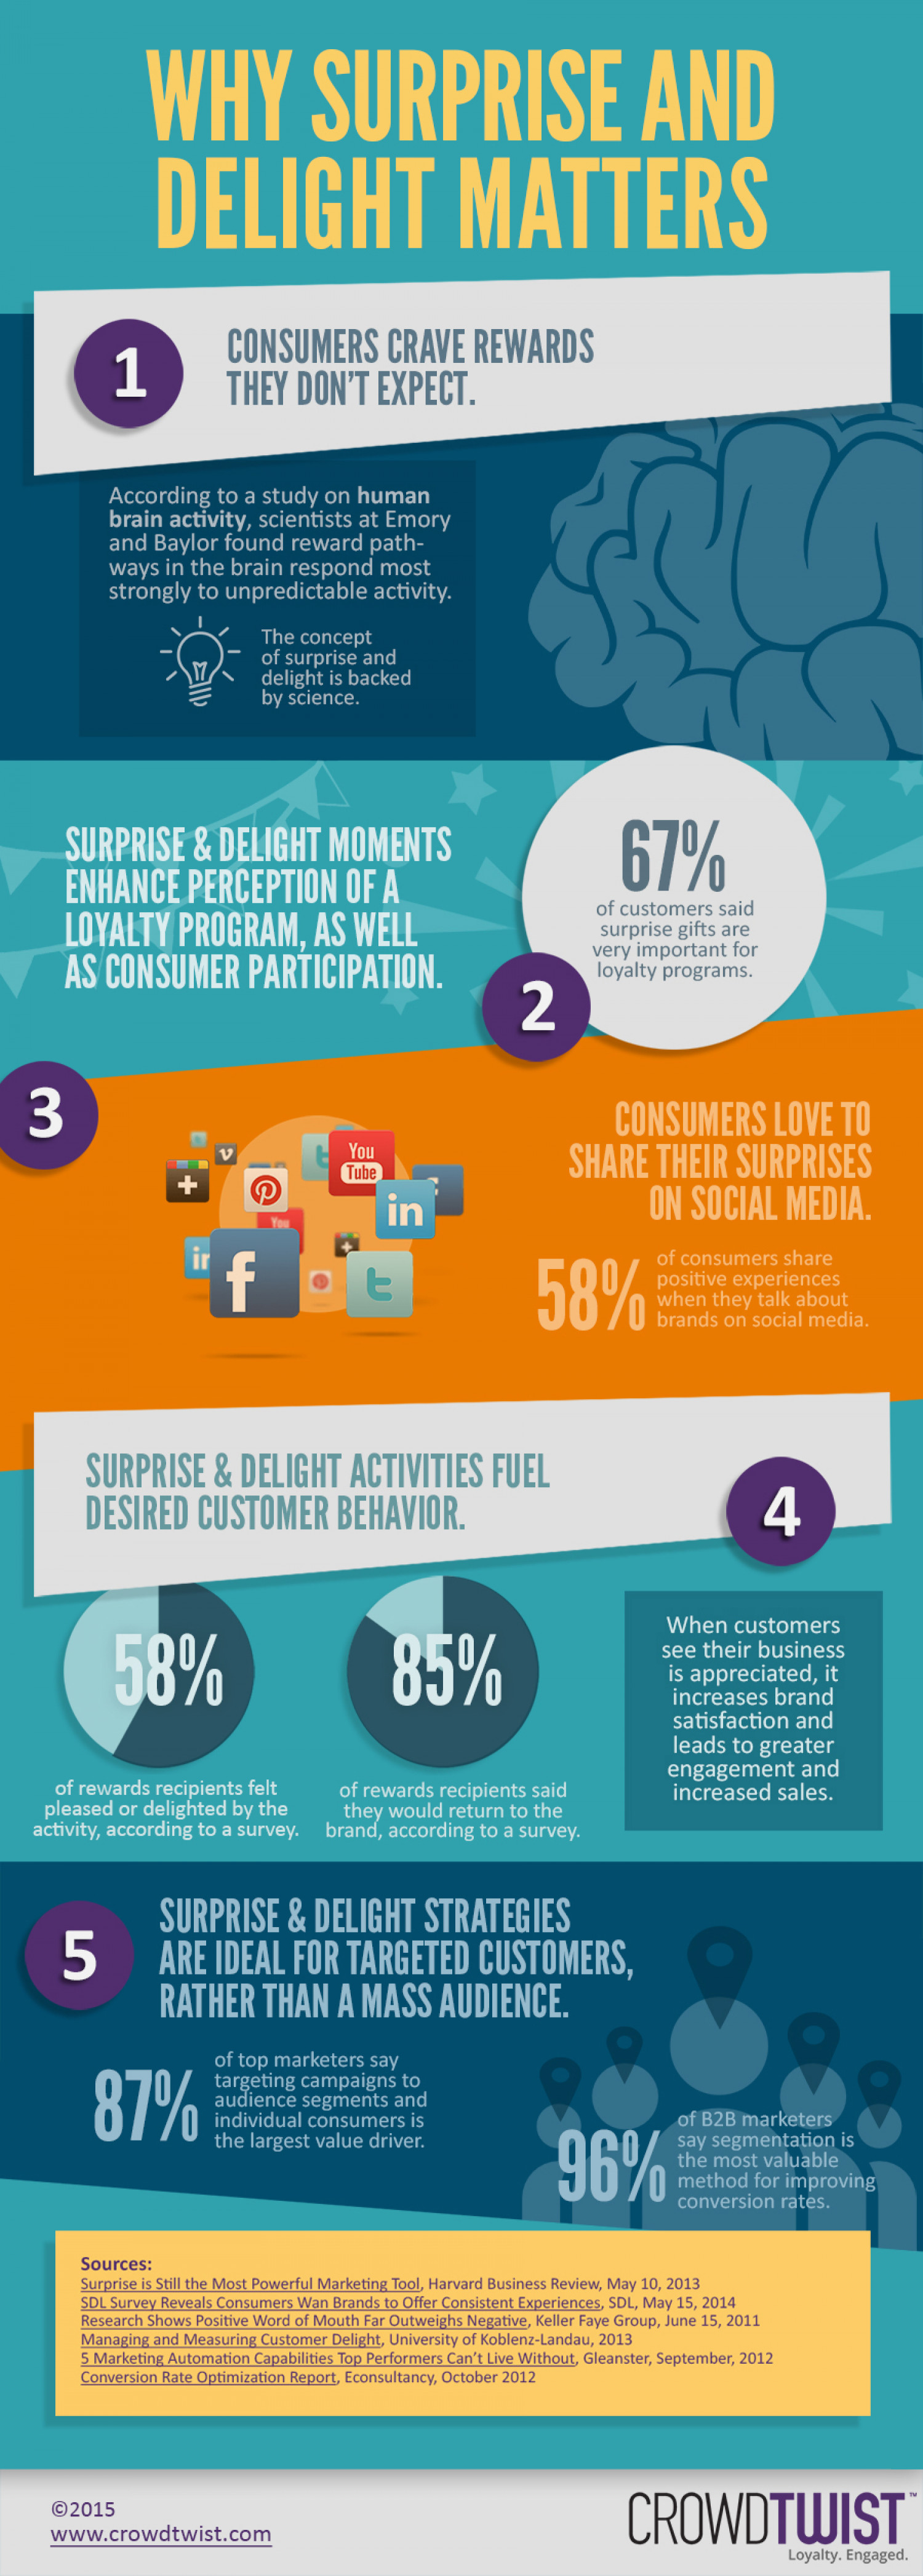 Why Surprise and Delight Matters Infographic